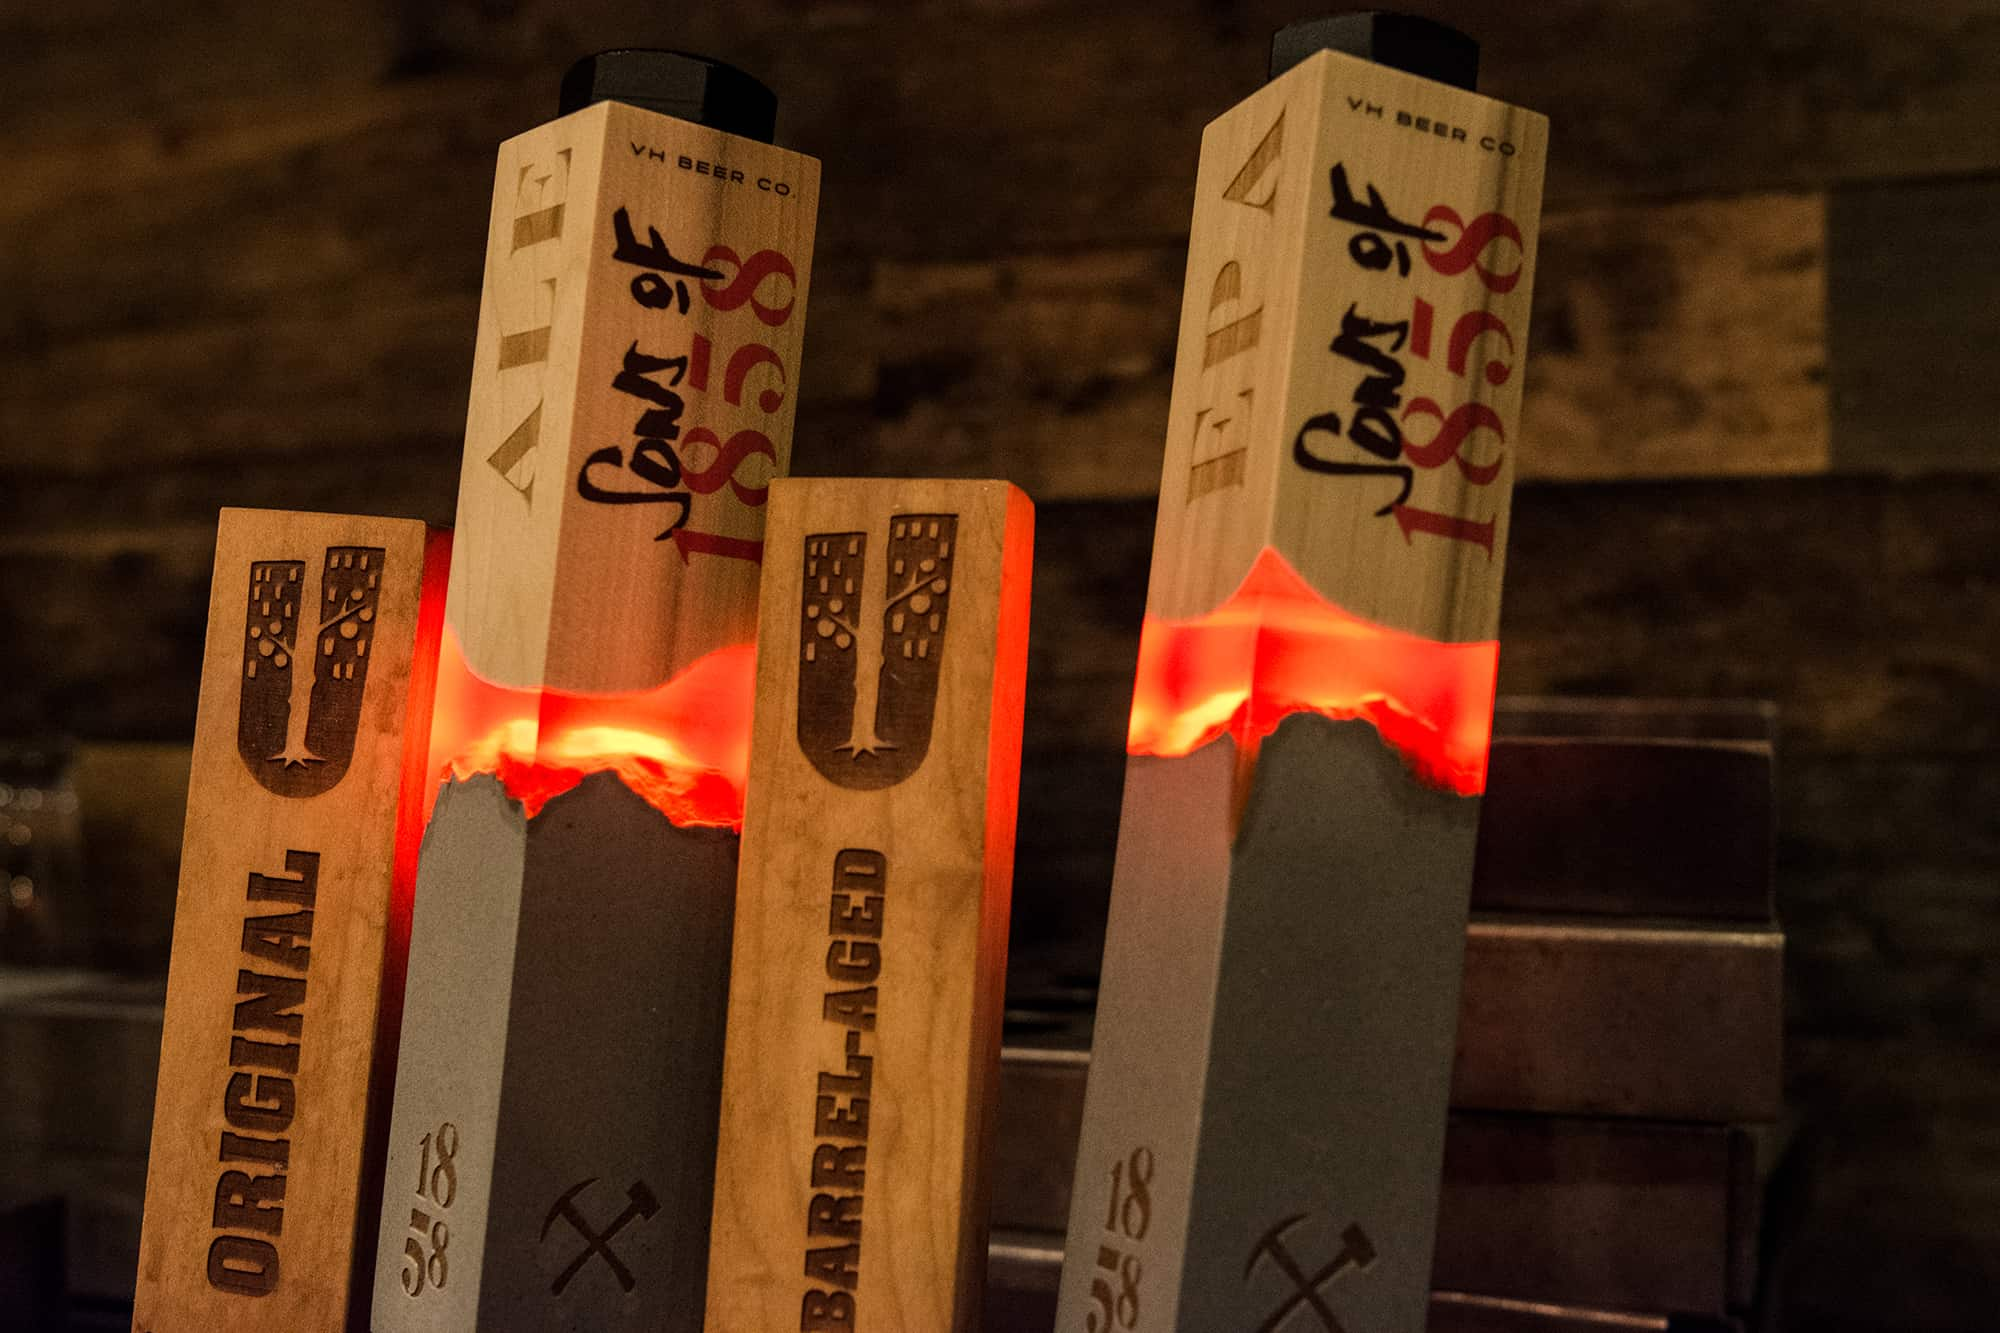 Sons of 1858 craft beer branding, packaging and design custom tap handles